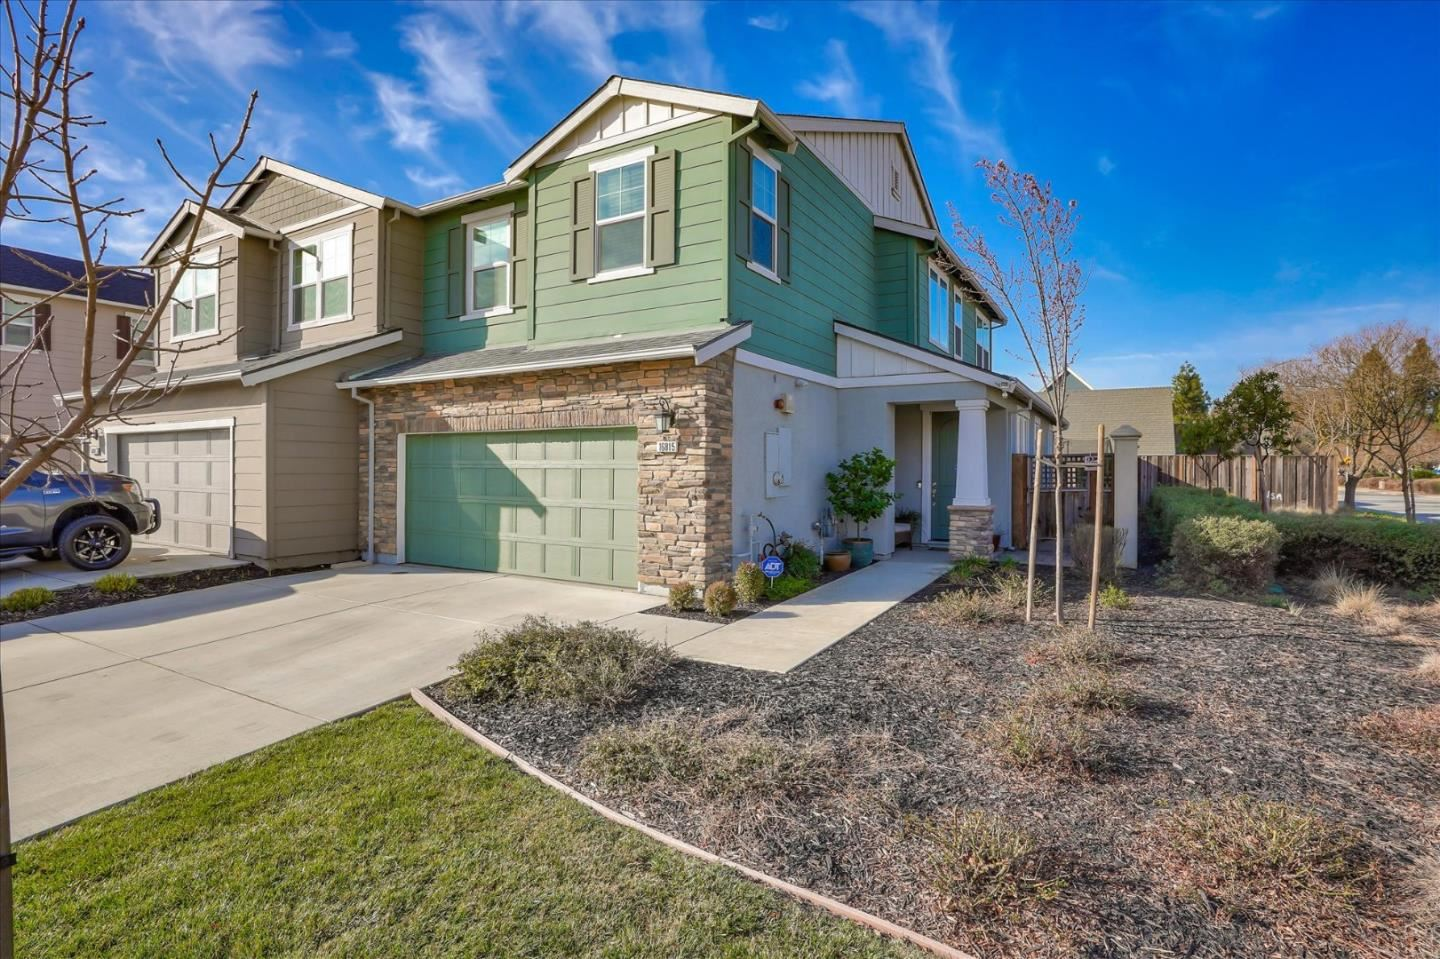 16815 San Dimas LN, Morgan Hill, CA 95037 - #: ML81786389